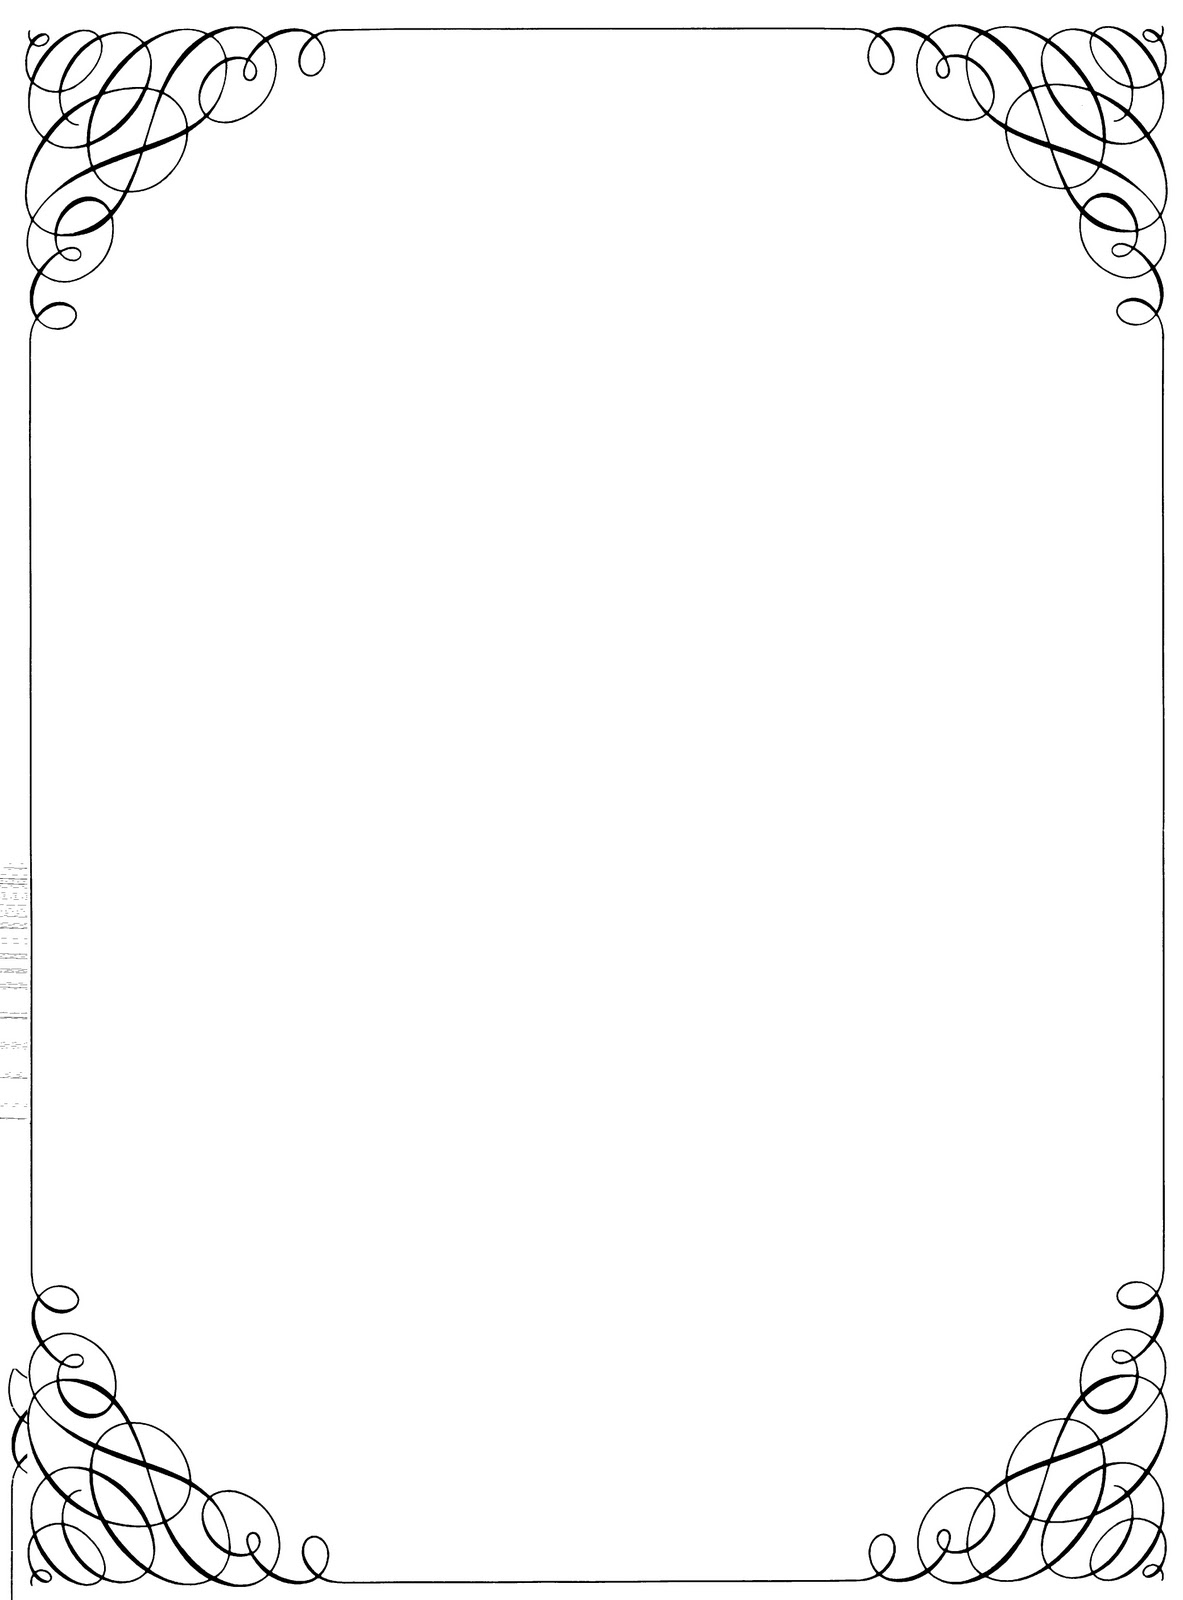 Free Border Clipart For Word Amp Look At Clip Art Images